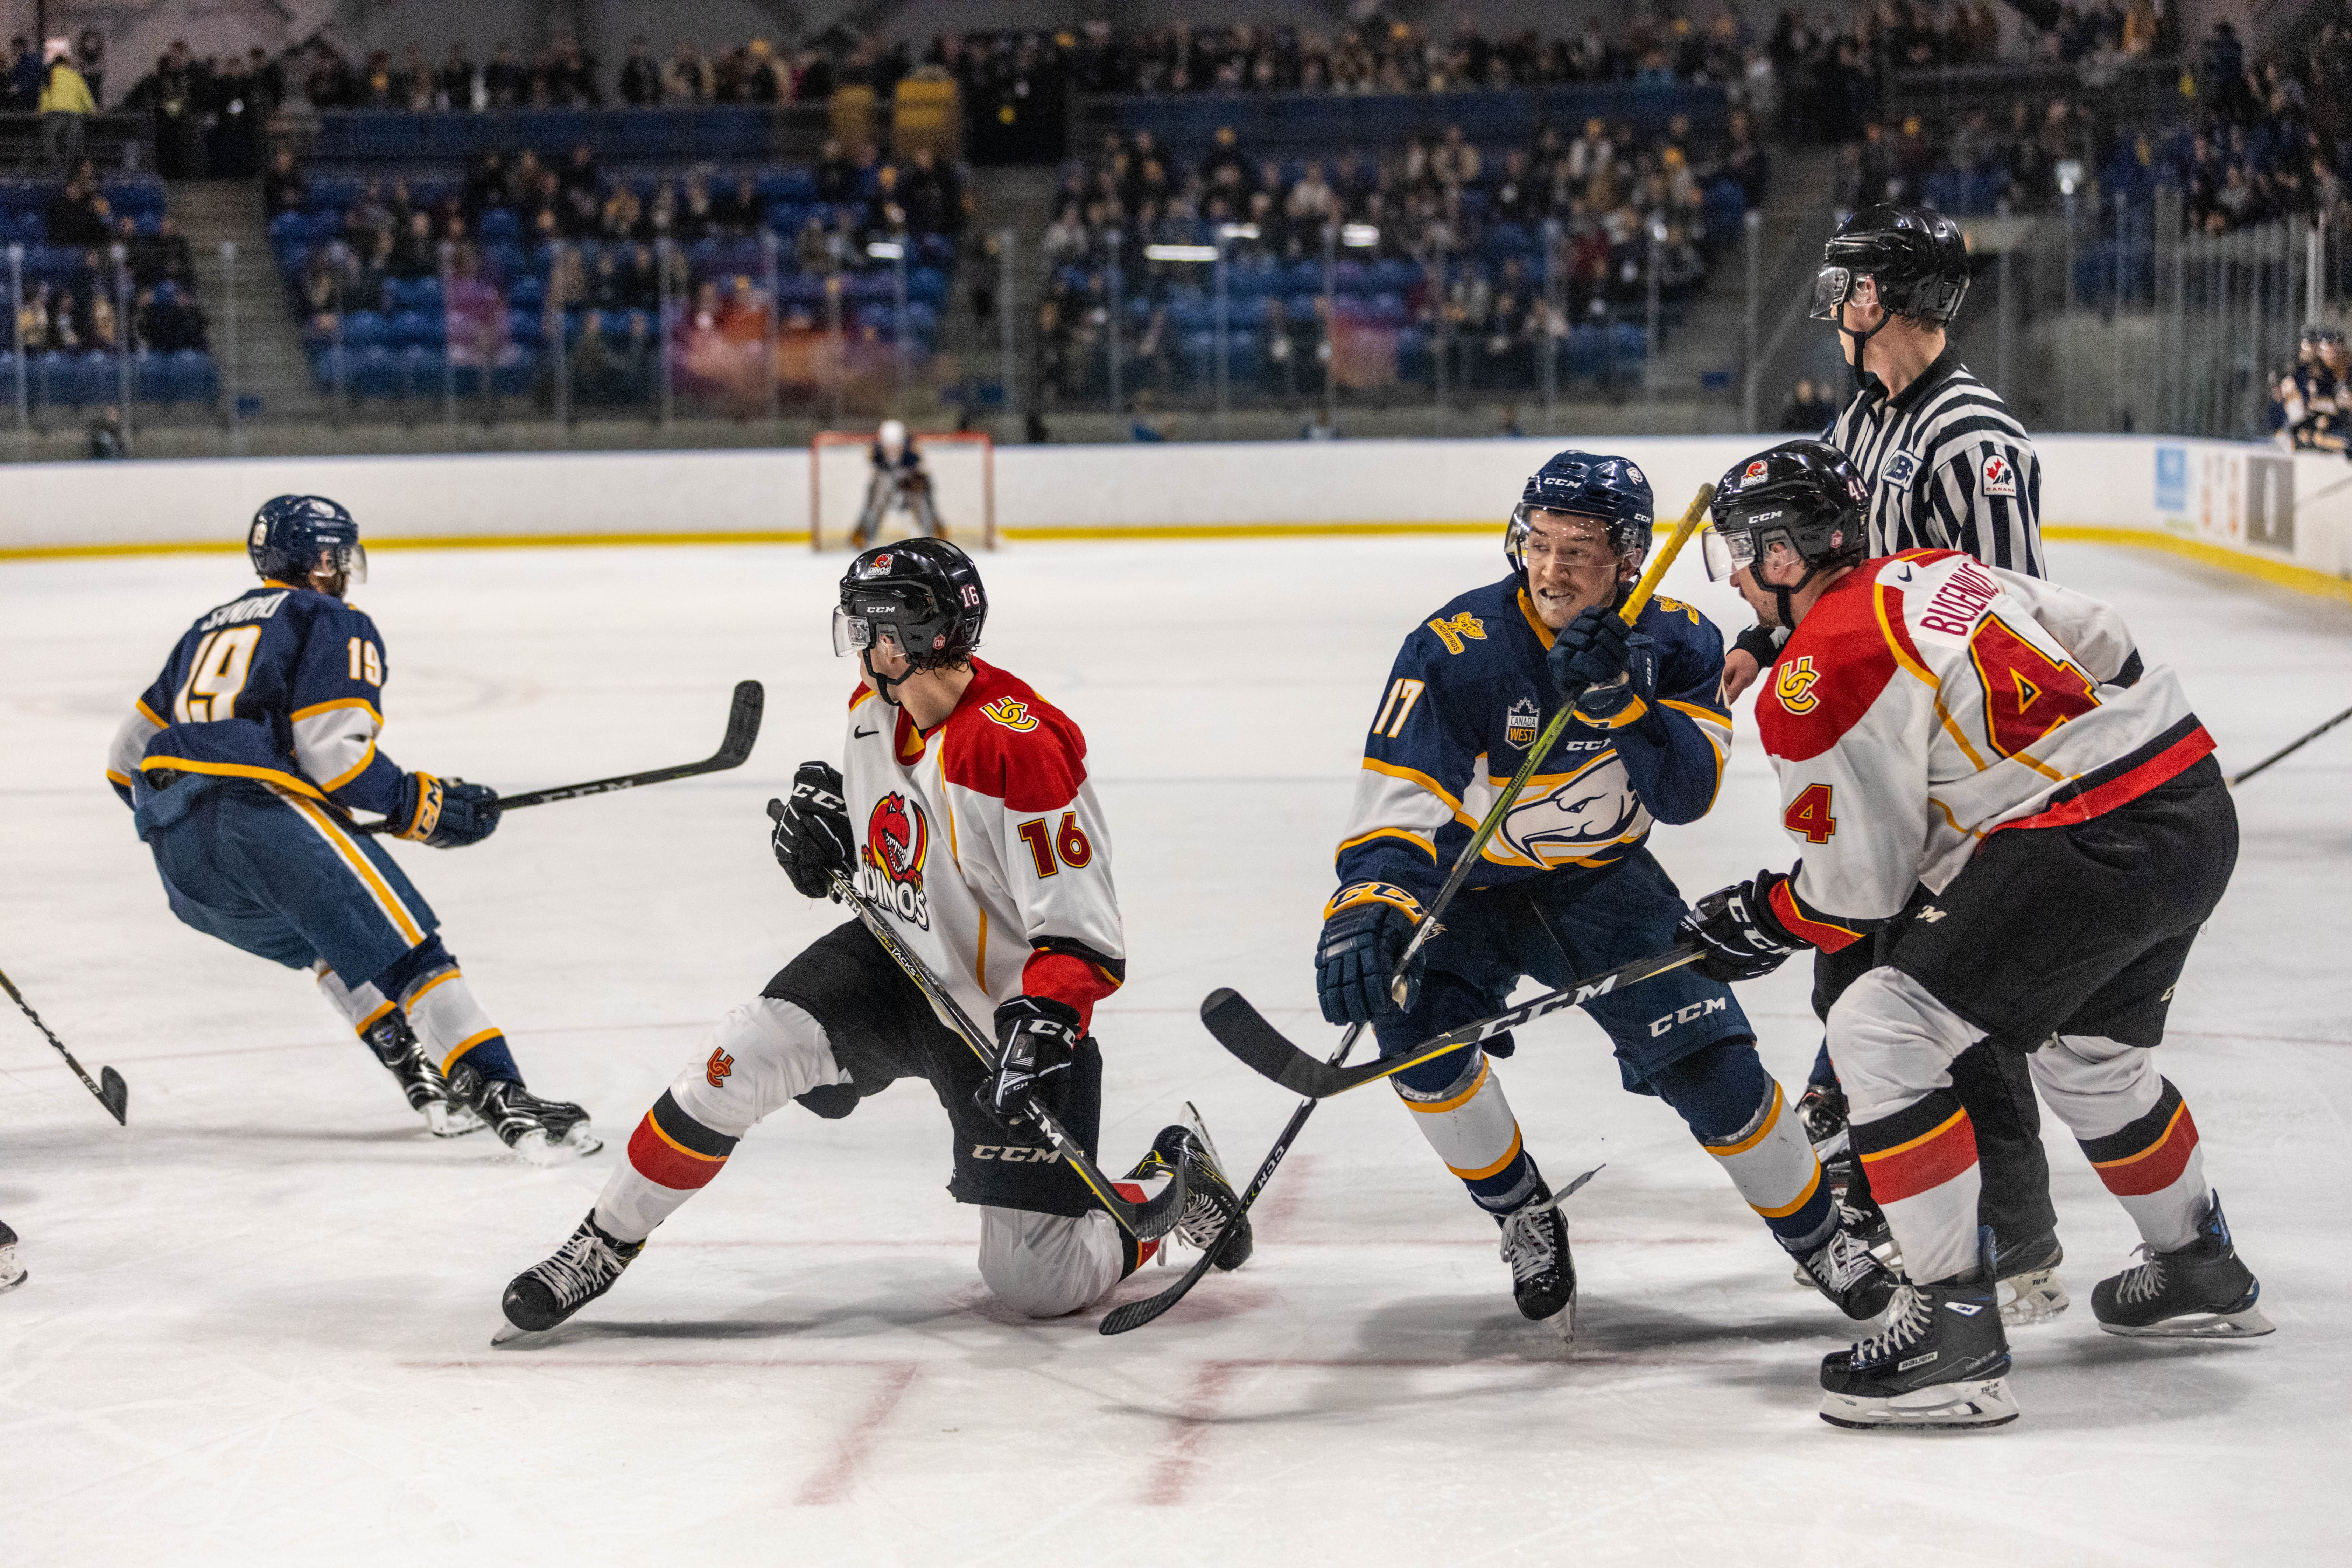 A weekend series against the Wisconsin Badgers is bound to be a clash of titans of North American collegiate ice hockey.